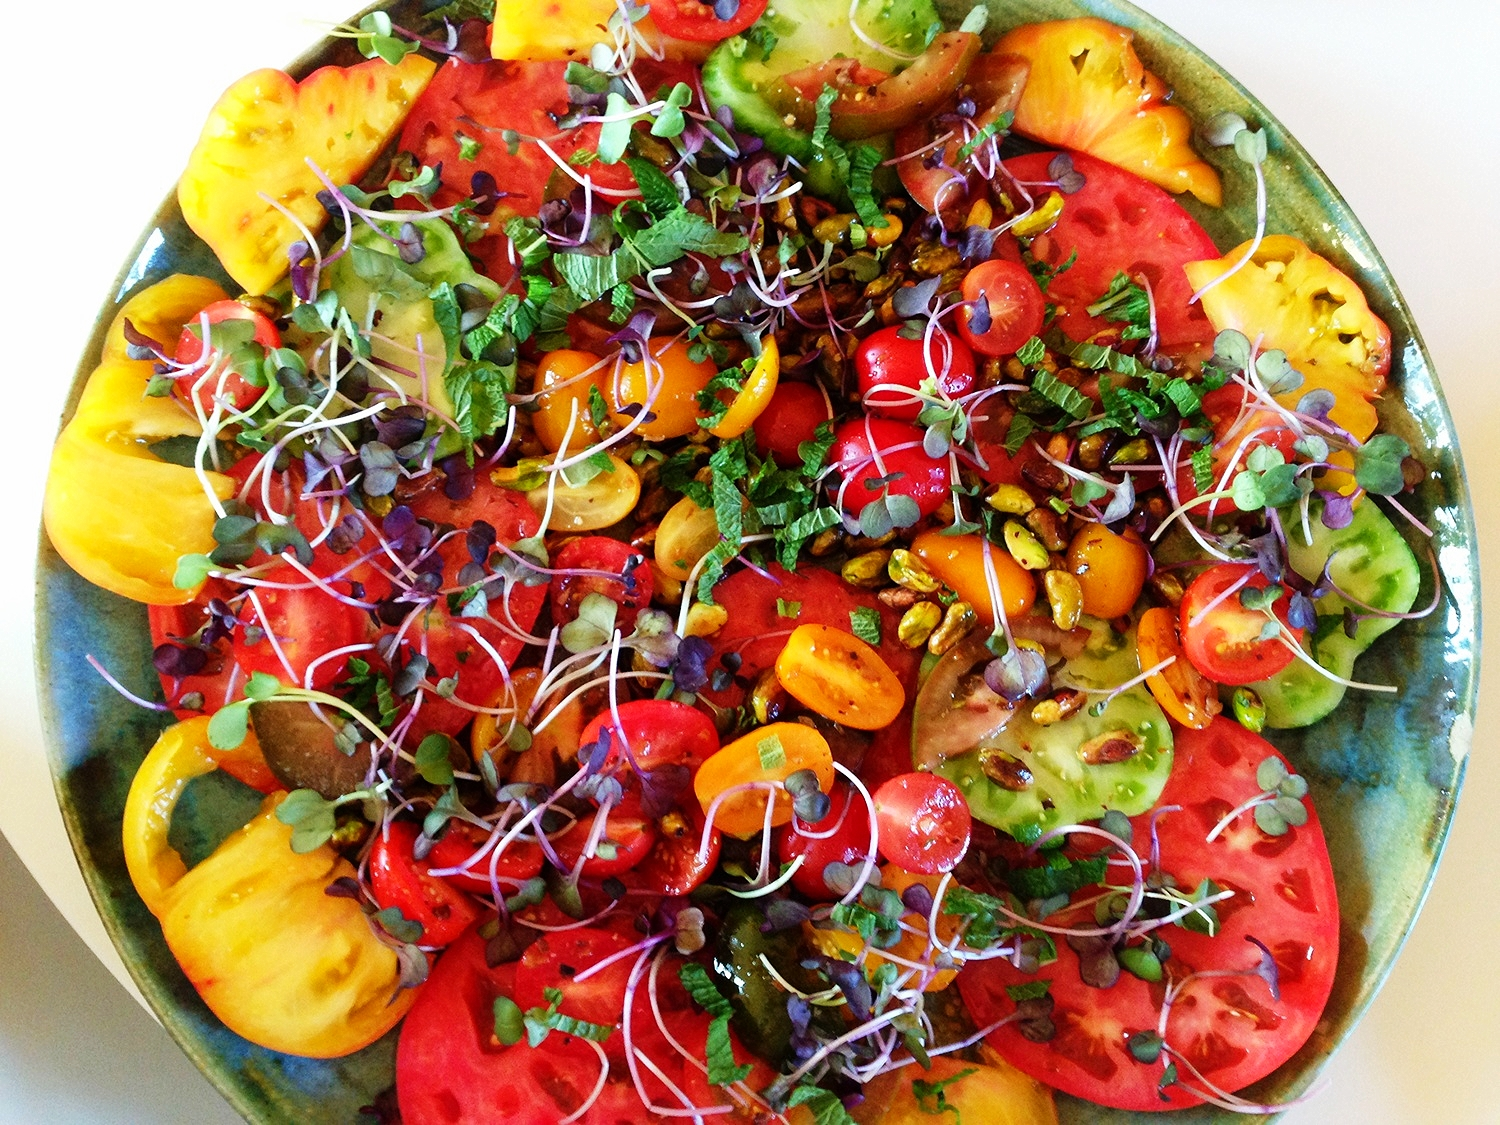 Heirloom tomato salad, broccoli sprouts, pistachios, and garden herbs